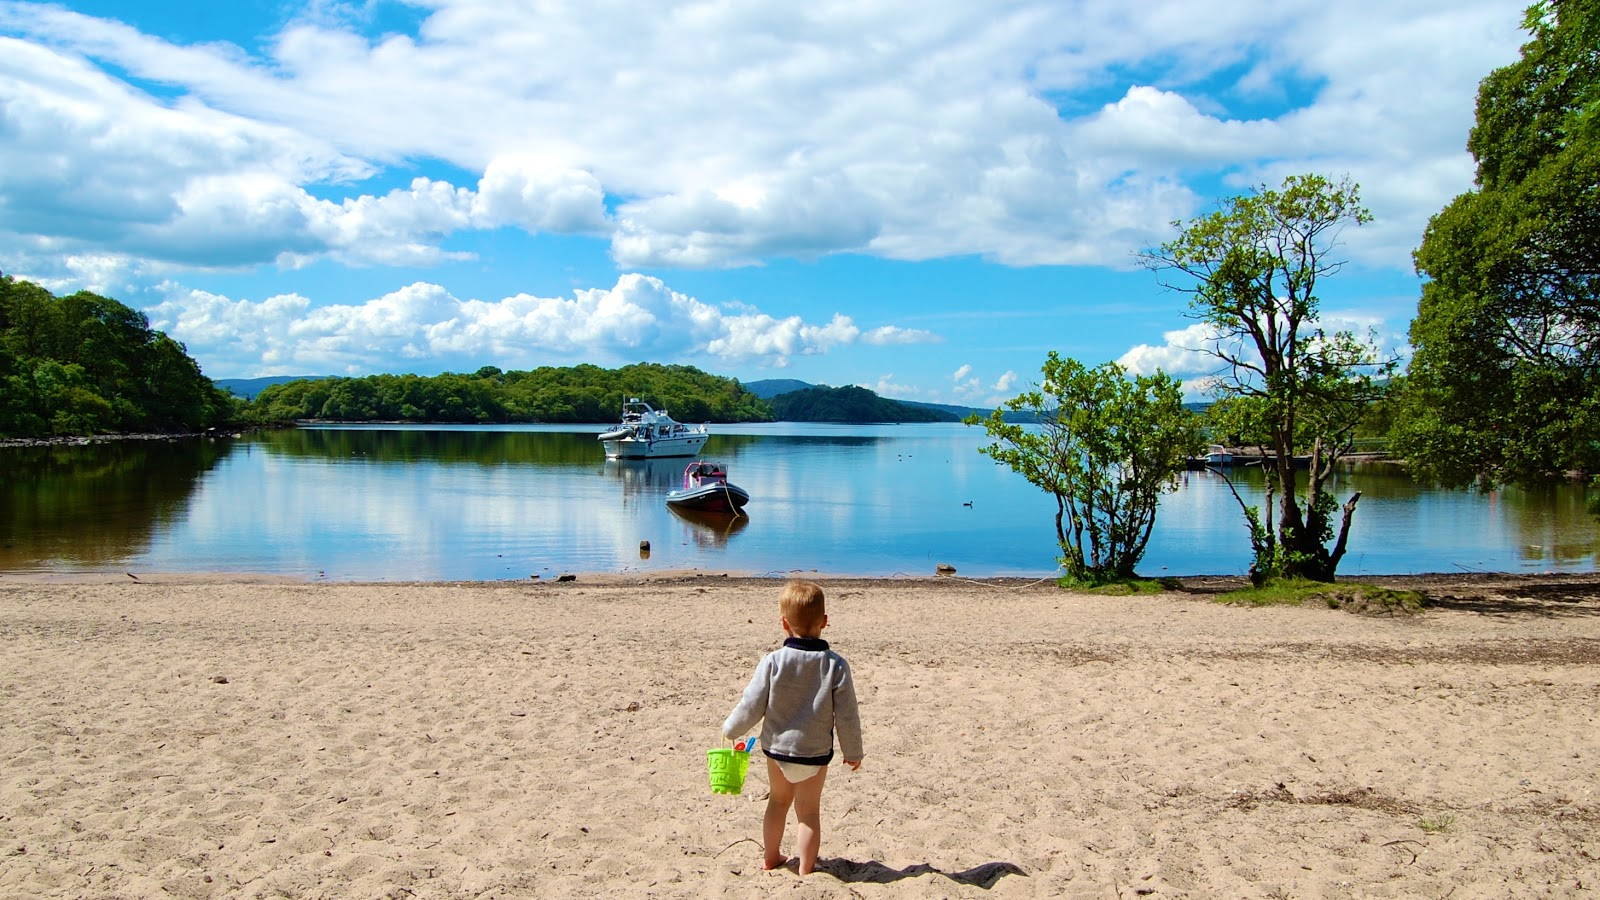 On the beach on Inchcailloch in Loch Lomond